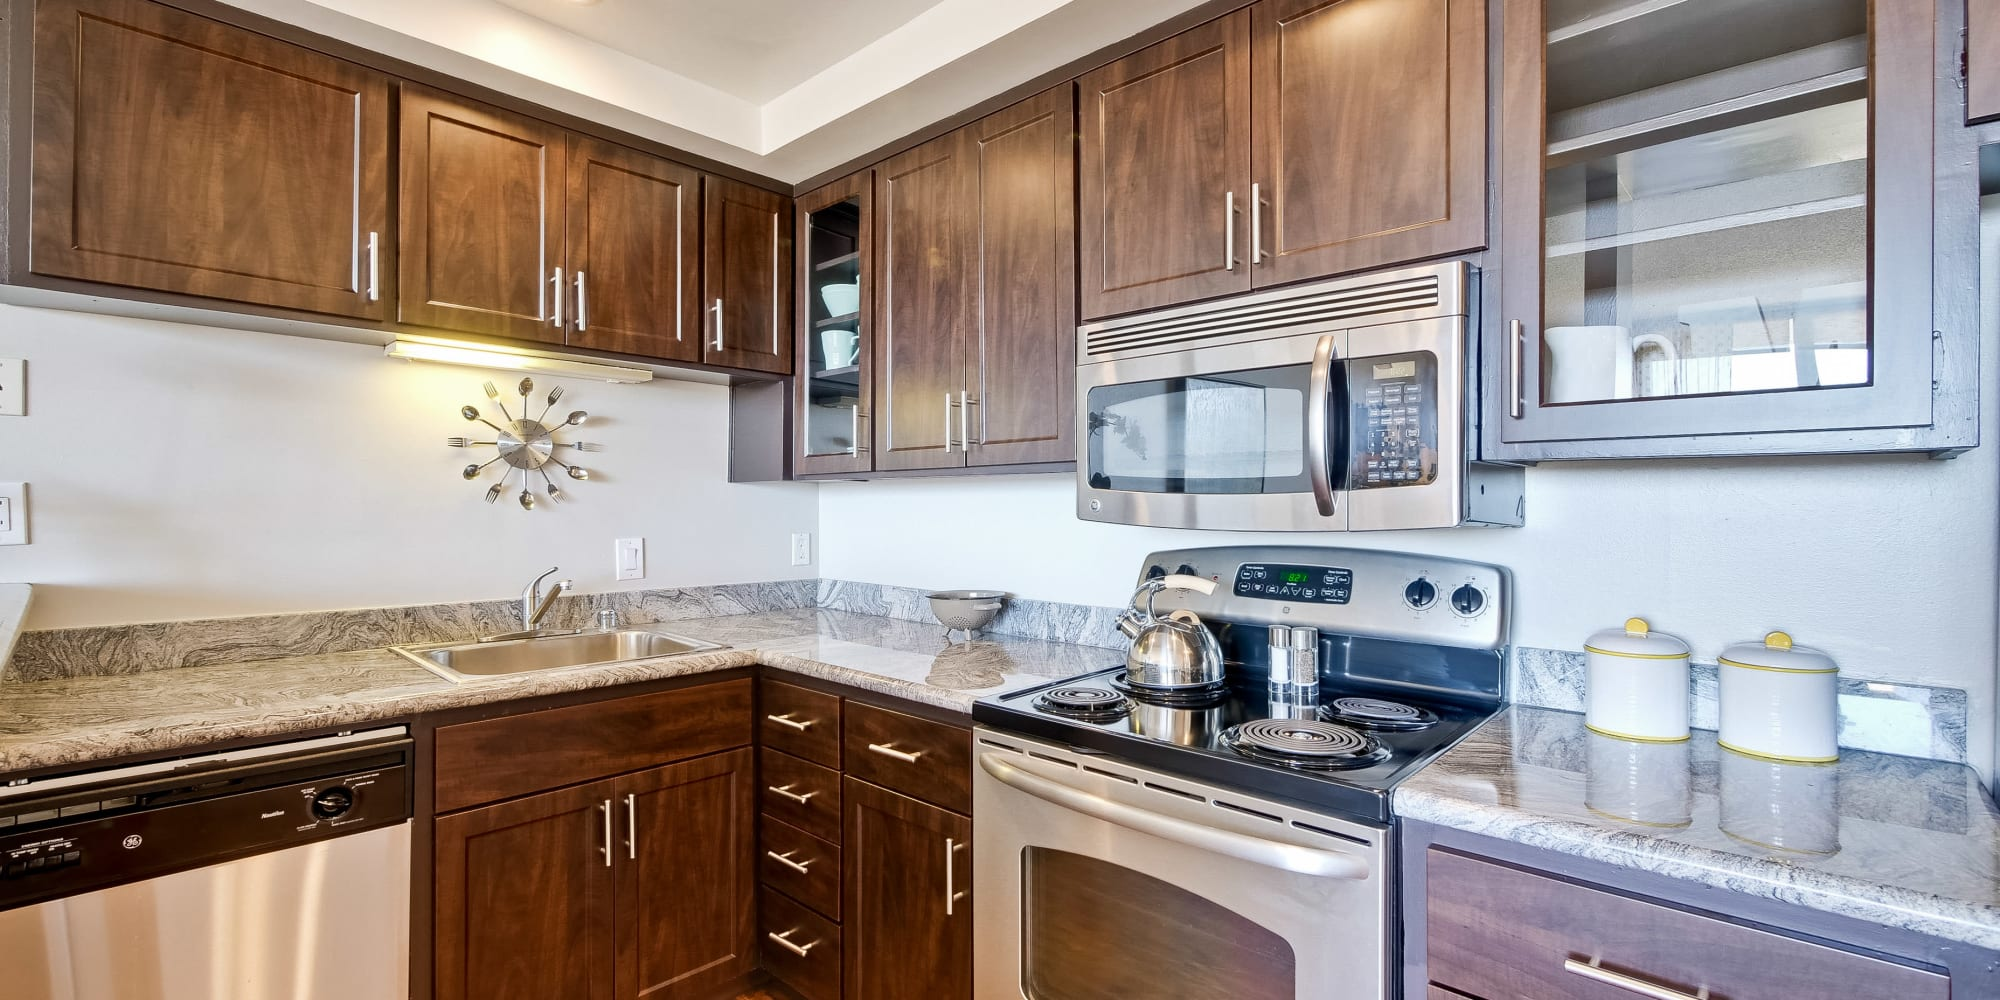 Apartments with luxury kitchens at The Marc, Palo Alto in Palo Alto, California